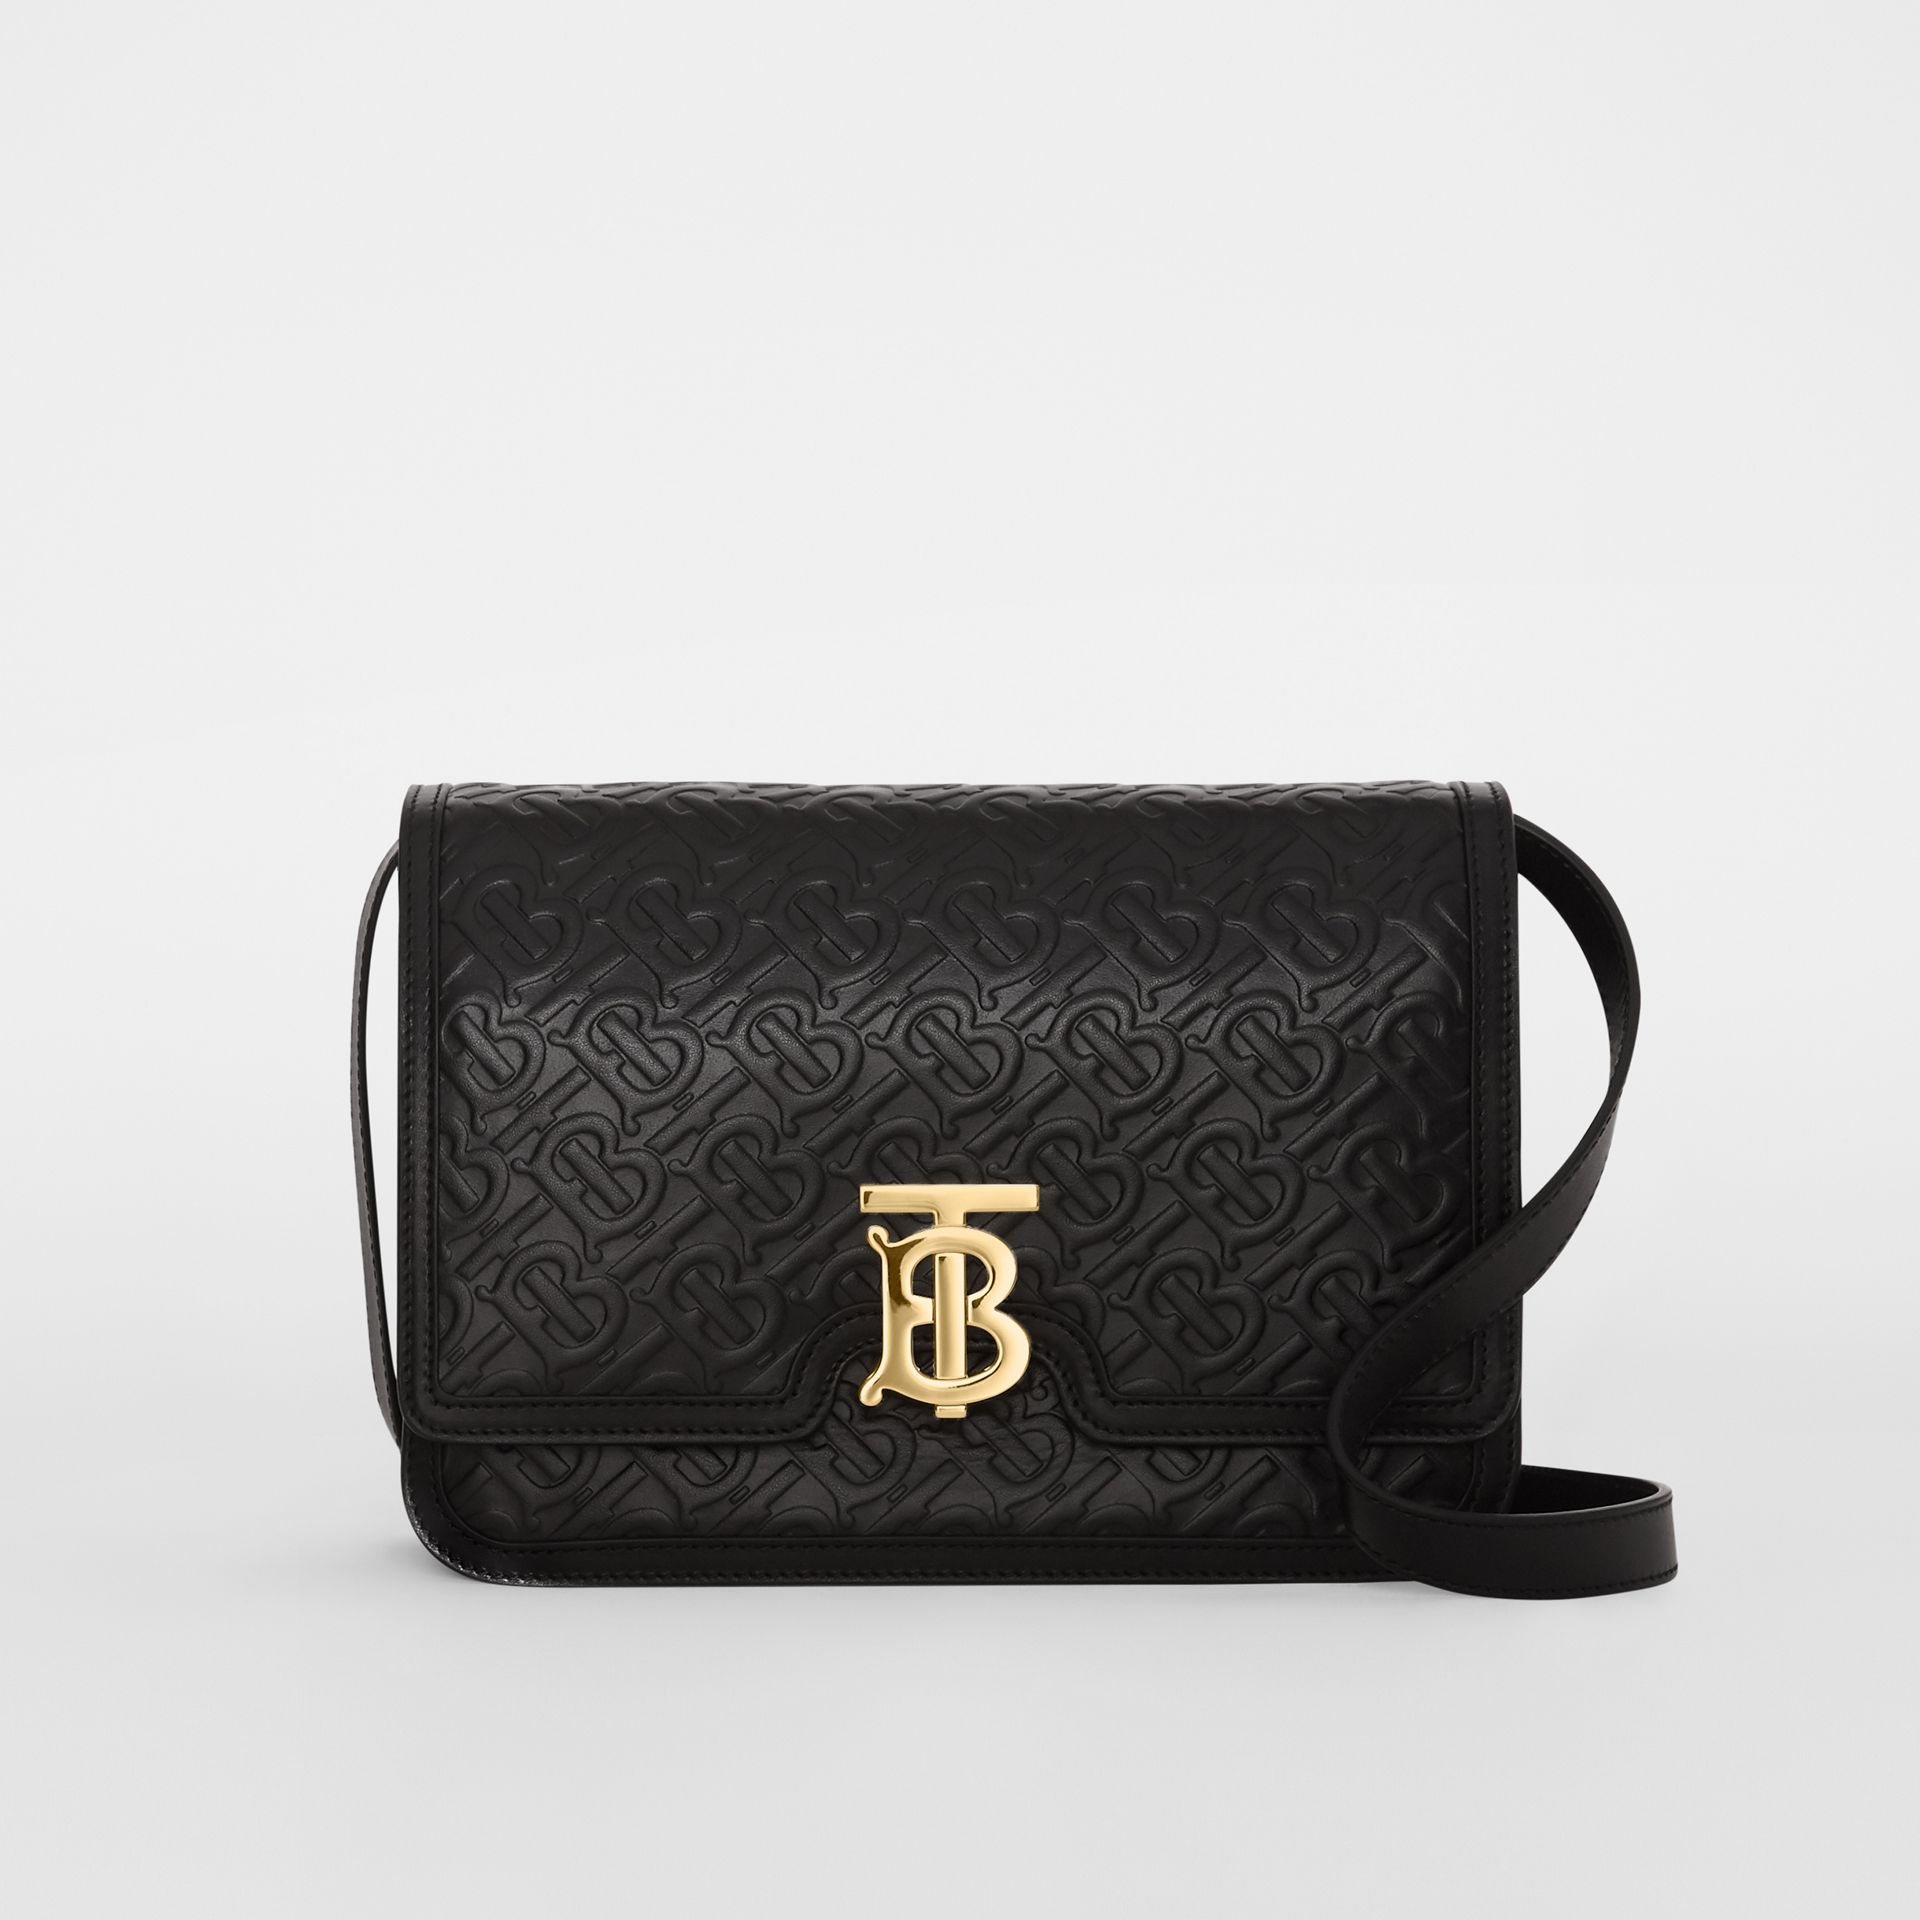 Medium Monogram Leather TB Bag in Black - Women | Burberry United Kingdom - gallery image 0